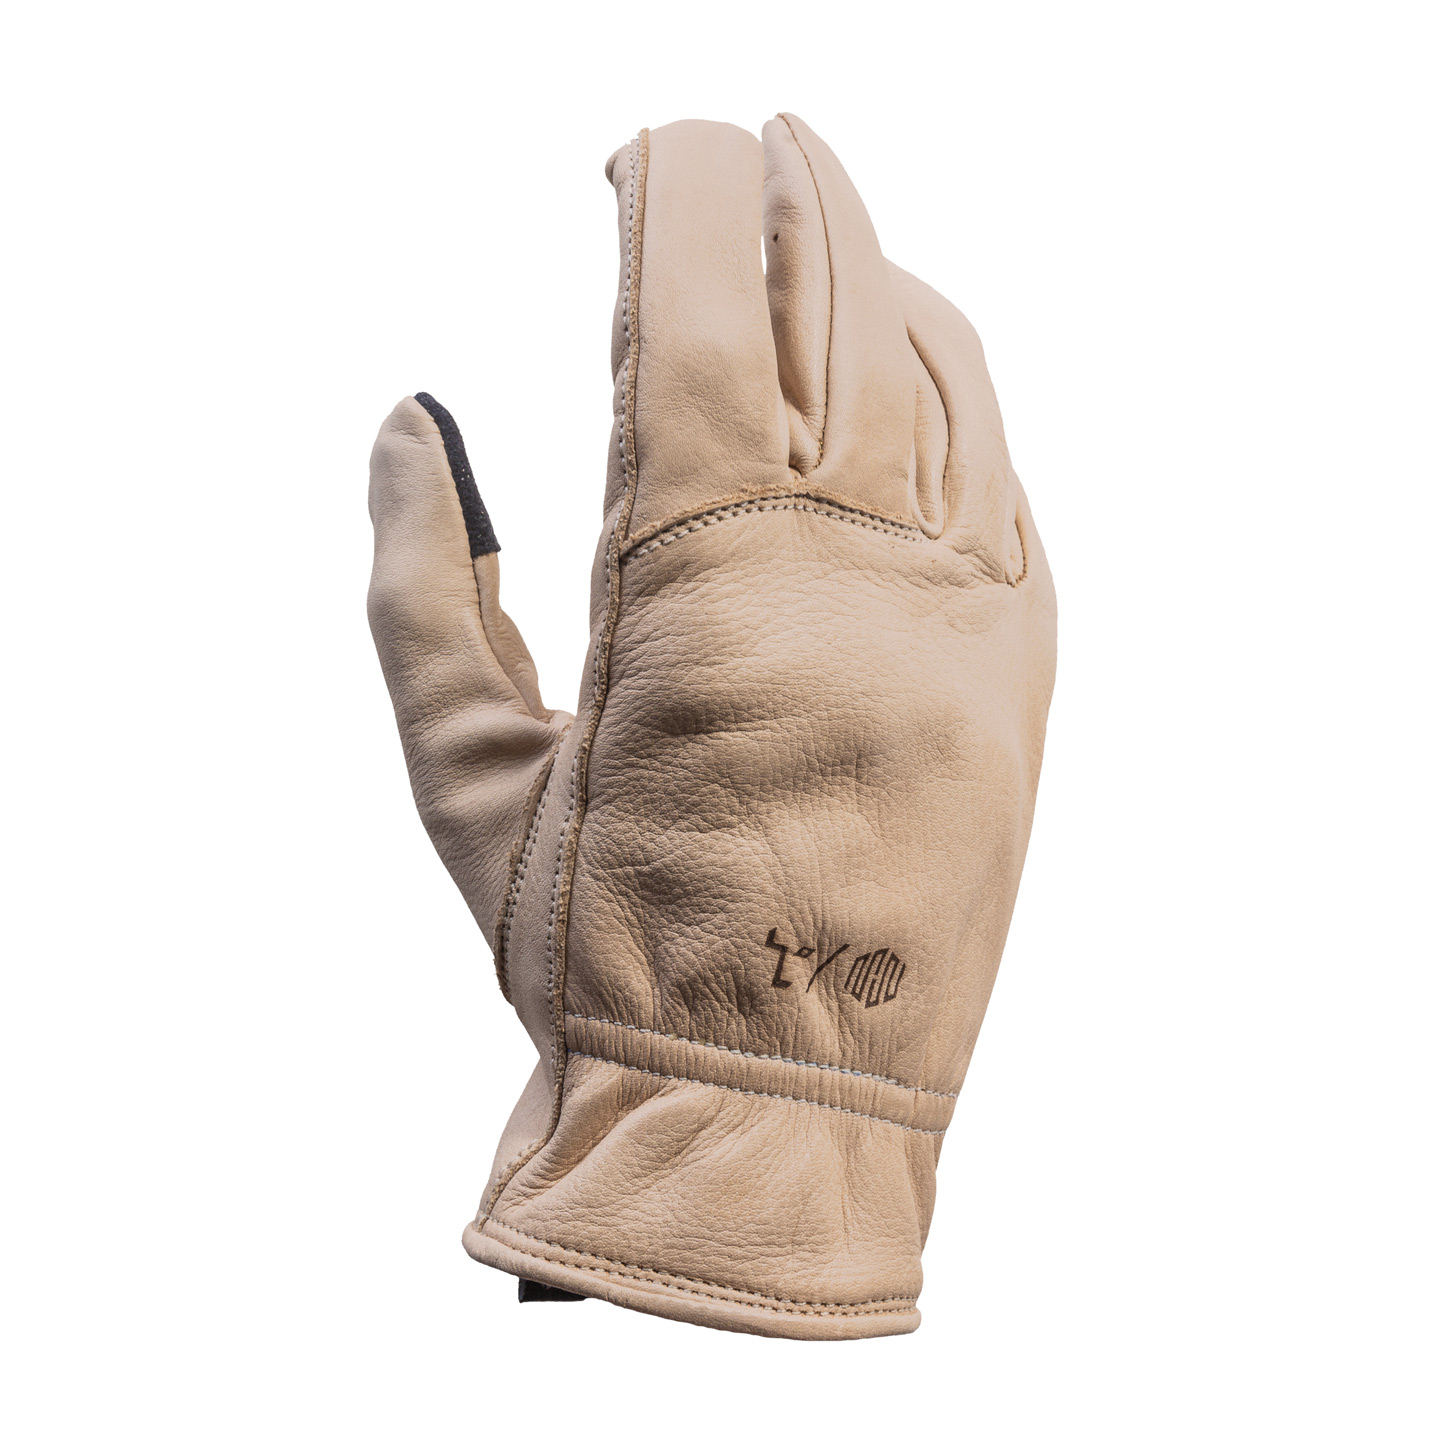 Del Mar Gloves Tan Full